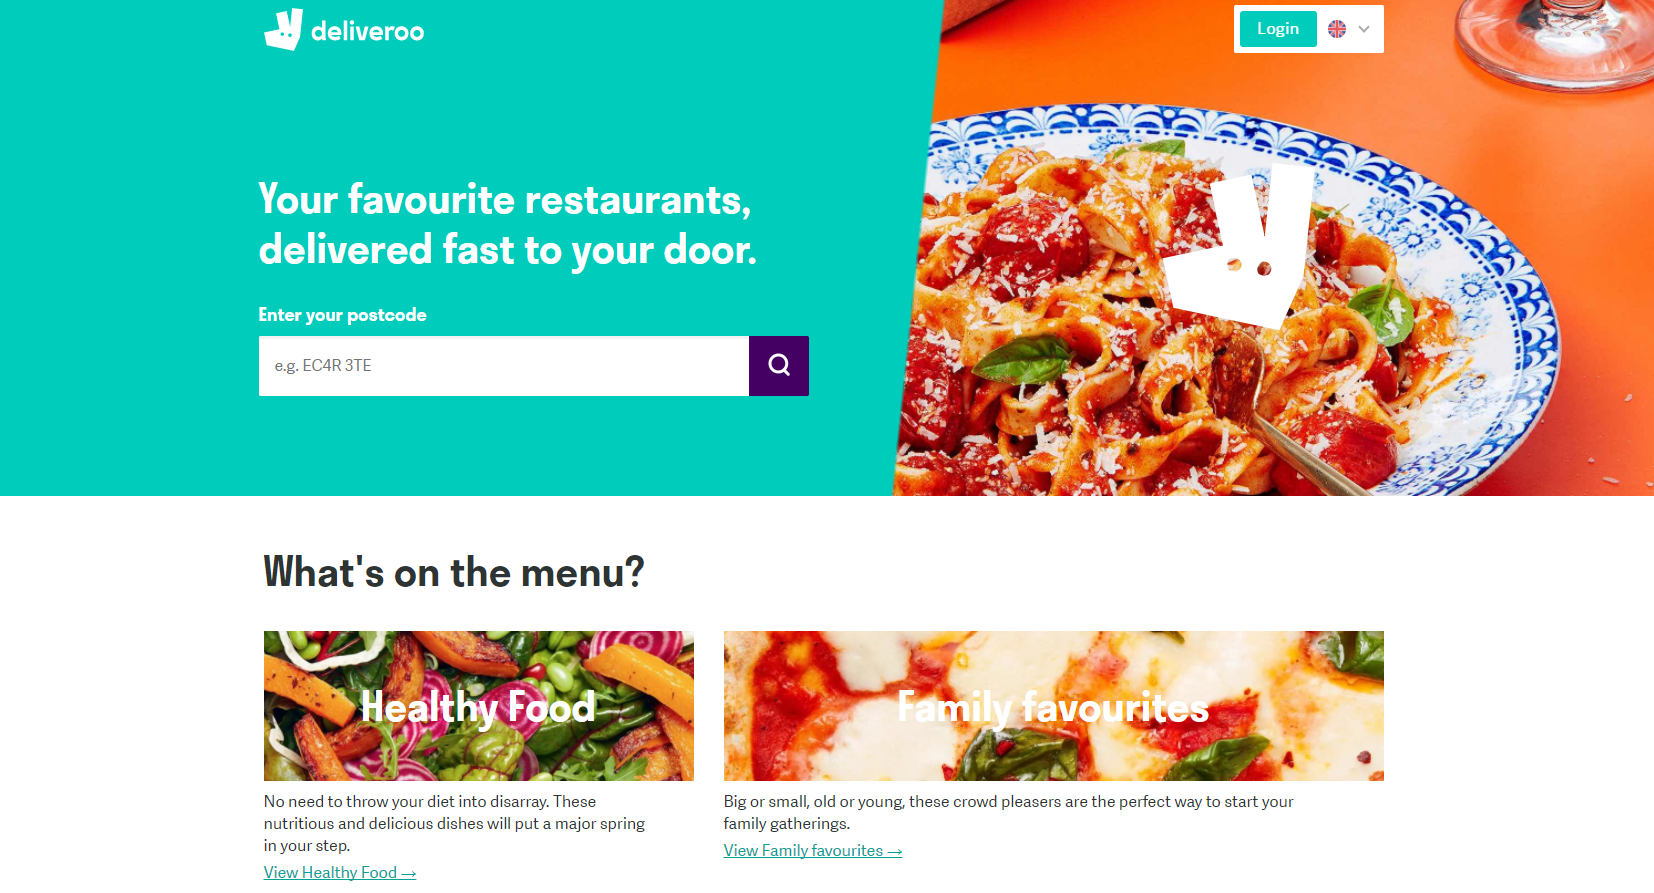 deliveroo value proposition